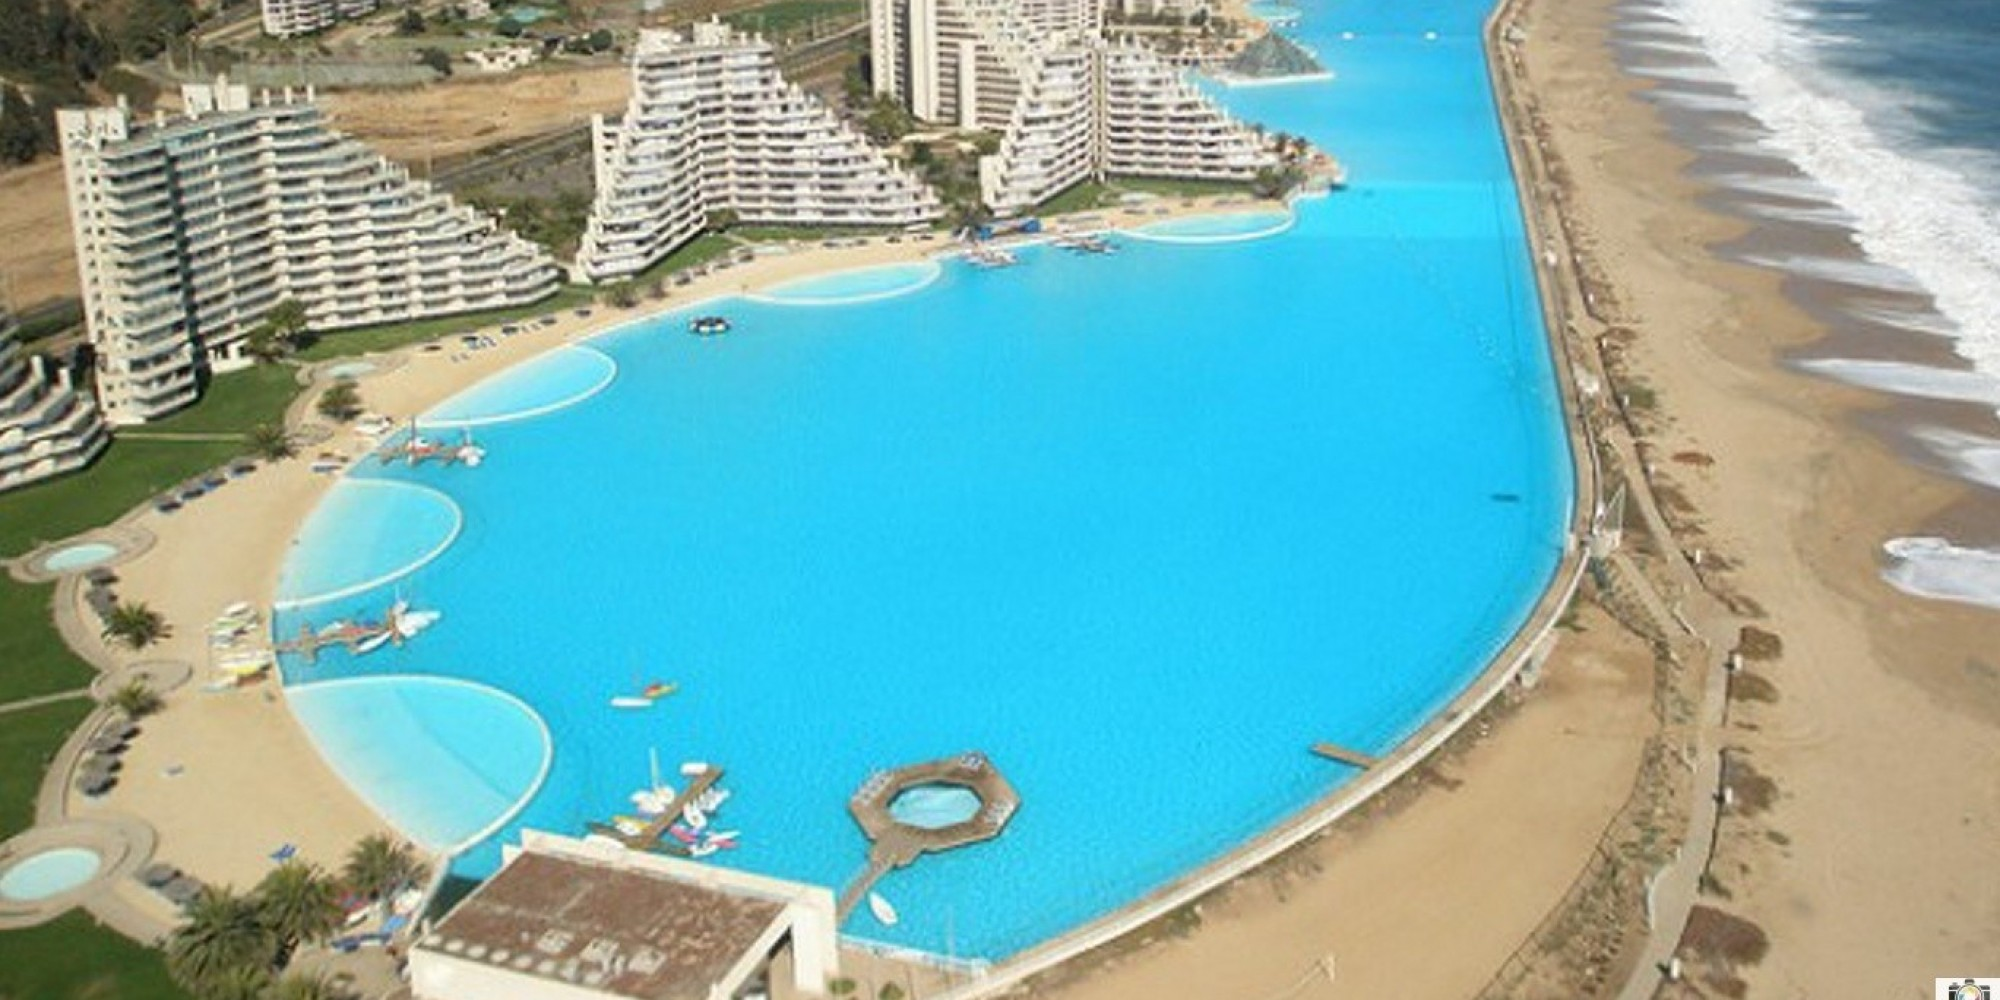 World's Largest Outdoor Pool At Chile's San Alfonso del Mar Resort (PHOTOS)  | HuffPost